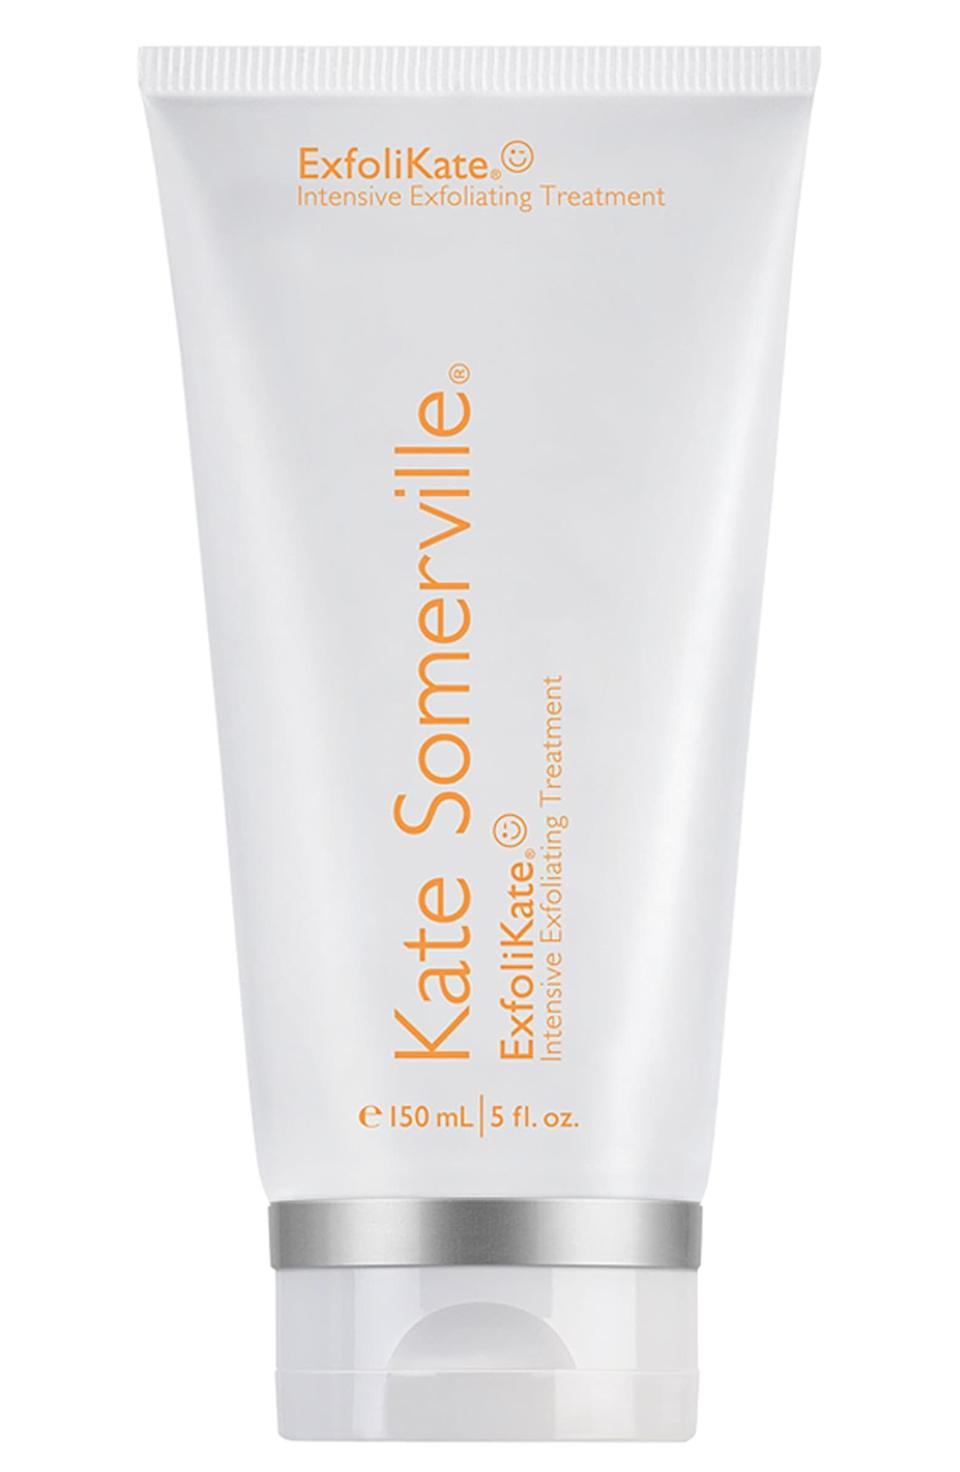 "<p><strong>Kate Somerville</strong></p><p>ulta.com</p><p><strong>$85.00</strong></p><p><a href=""https://go.redirectingat.com?id=74968X1596630&url=https%3A%2F%2Fwww.ulta.com%2Fexfolikate-intensive-exfoliating-treatment%3FproductId%3DxlsImpprod18731199&sref=https%3A%2F%2Fwww.redbookmag.com%2Fbeauty%2Fmakeup-skincare%2Fg33767264%2Fskincare-products-for-men%2F"" rel=""nofollow noopener"" target=""_blank"" data-ylk=""slk:Shop Now"" class=""link rapid-noclick-resp"">Shop Now</a></p><p>Another misunderstood skincare product, exfoliators like this one from Kate Somerville are great for moderating skin texture, pores and wrinkles. Use twice a week, and you'll notice the difference. </p>"